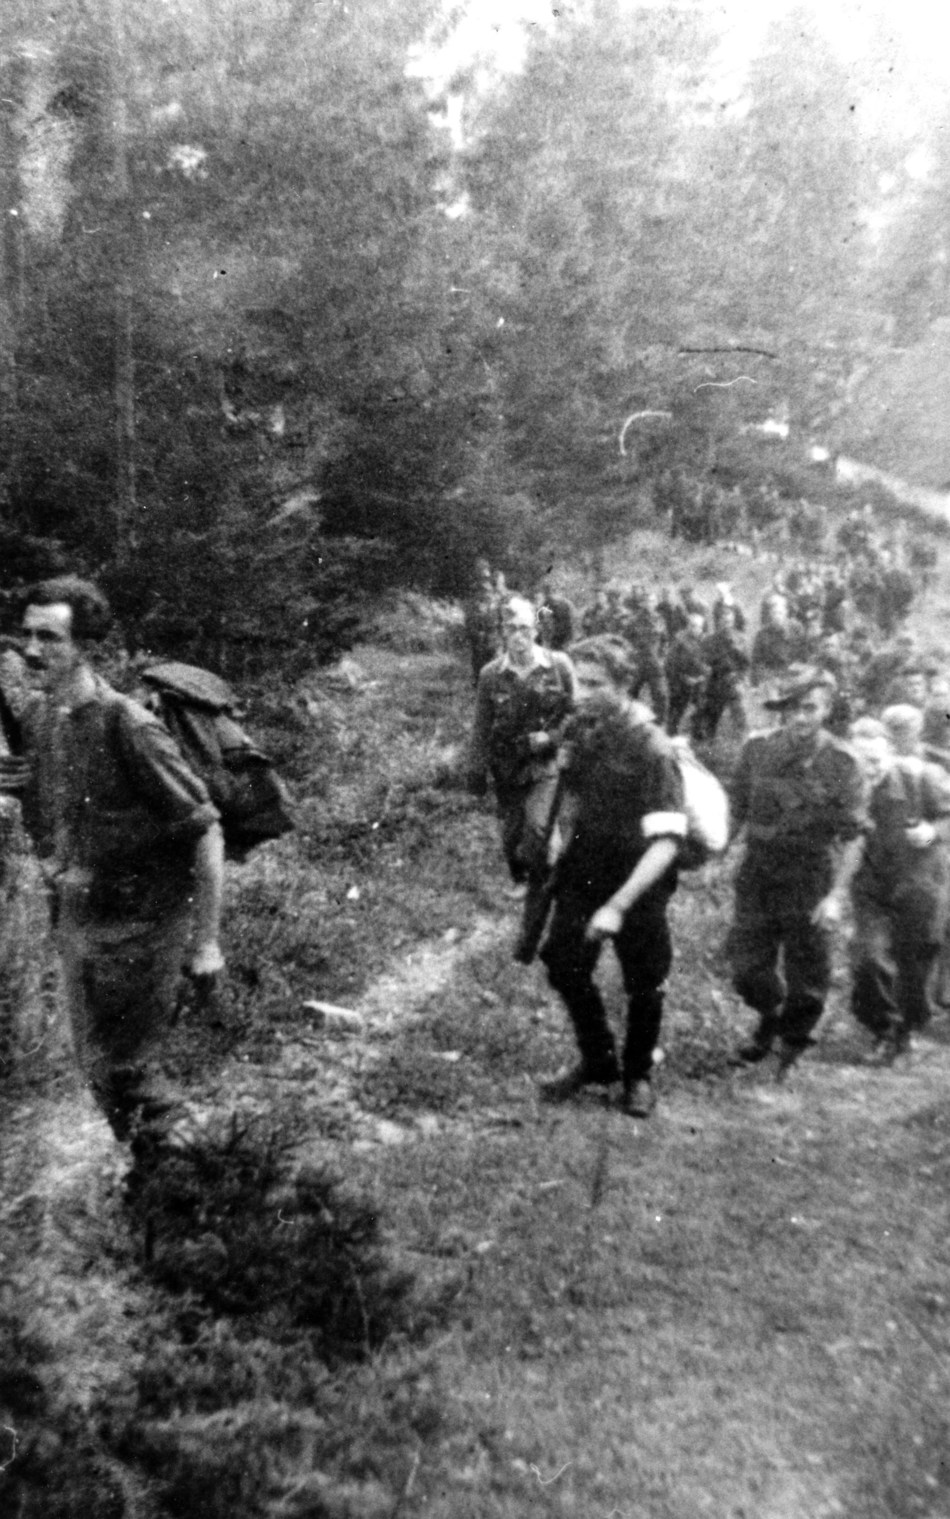 September 1944; over 100 prisoners of war escaping the Germans along The Crow's Flight freedom trail, guided by the Slovenian resistance.www.thecrowsflight.com / www.ahundredmilesasthecrowflies.com